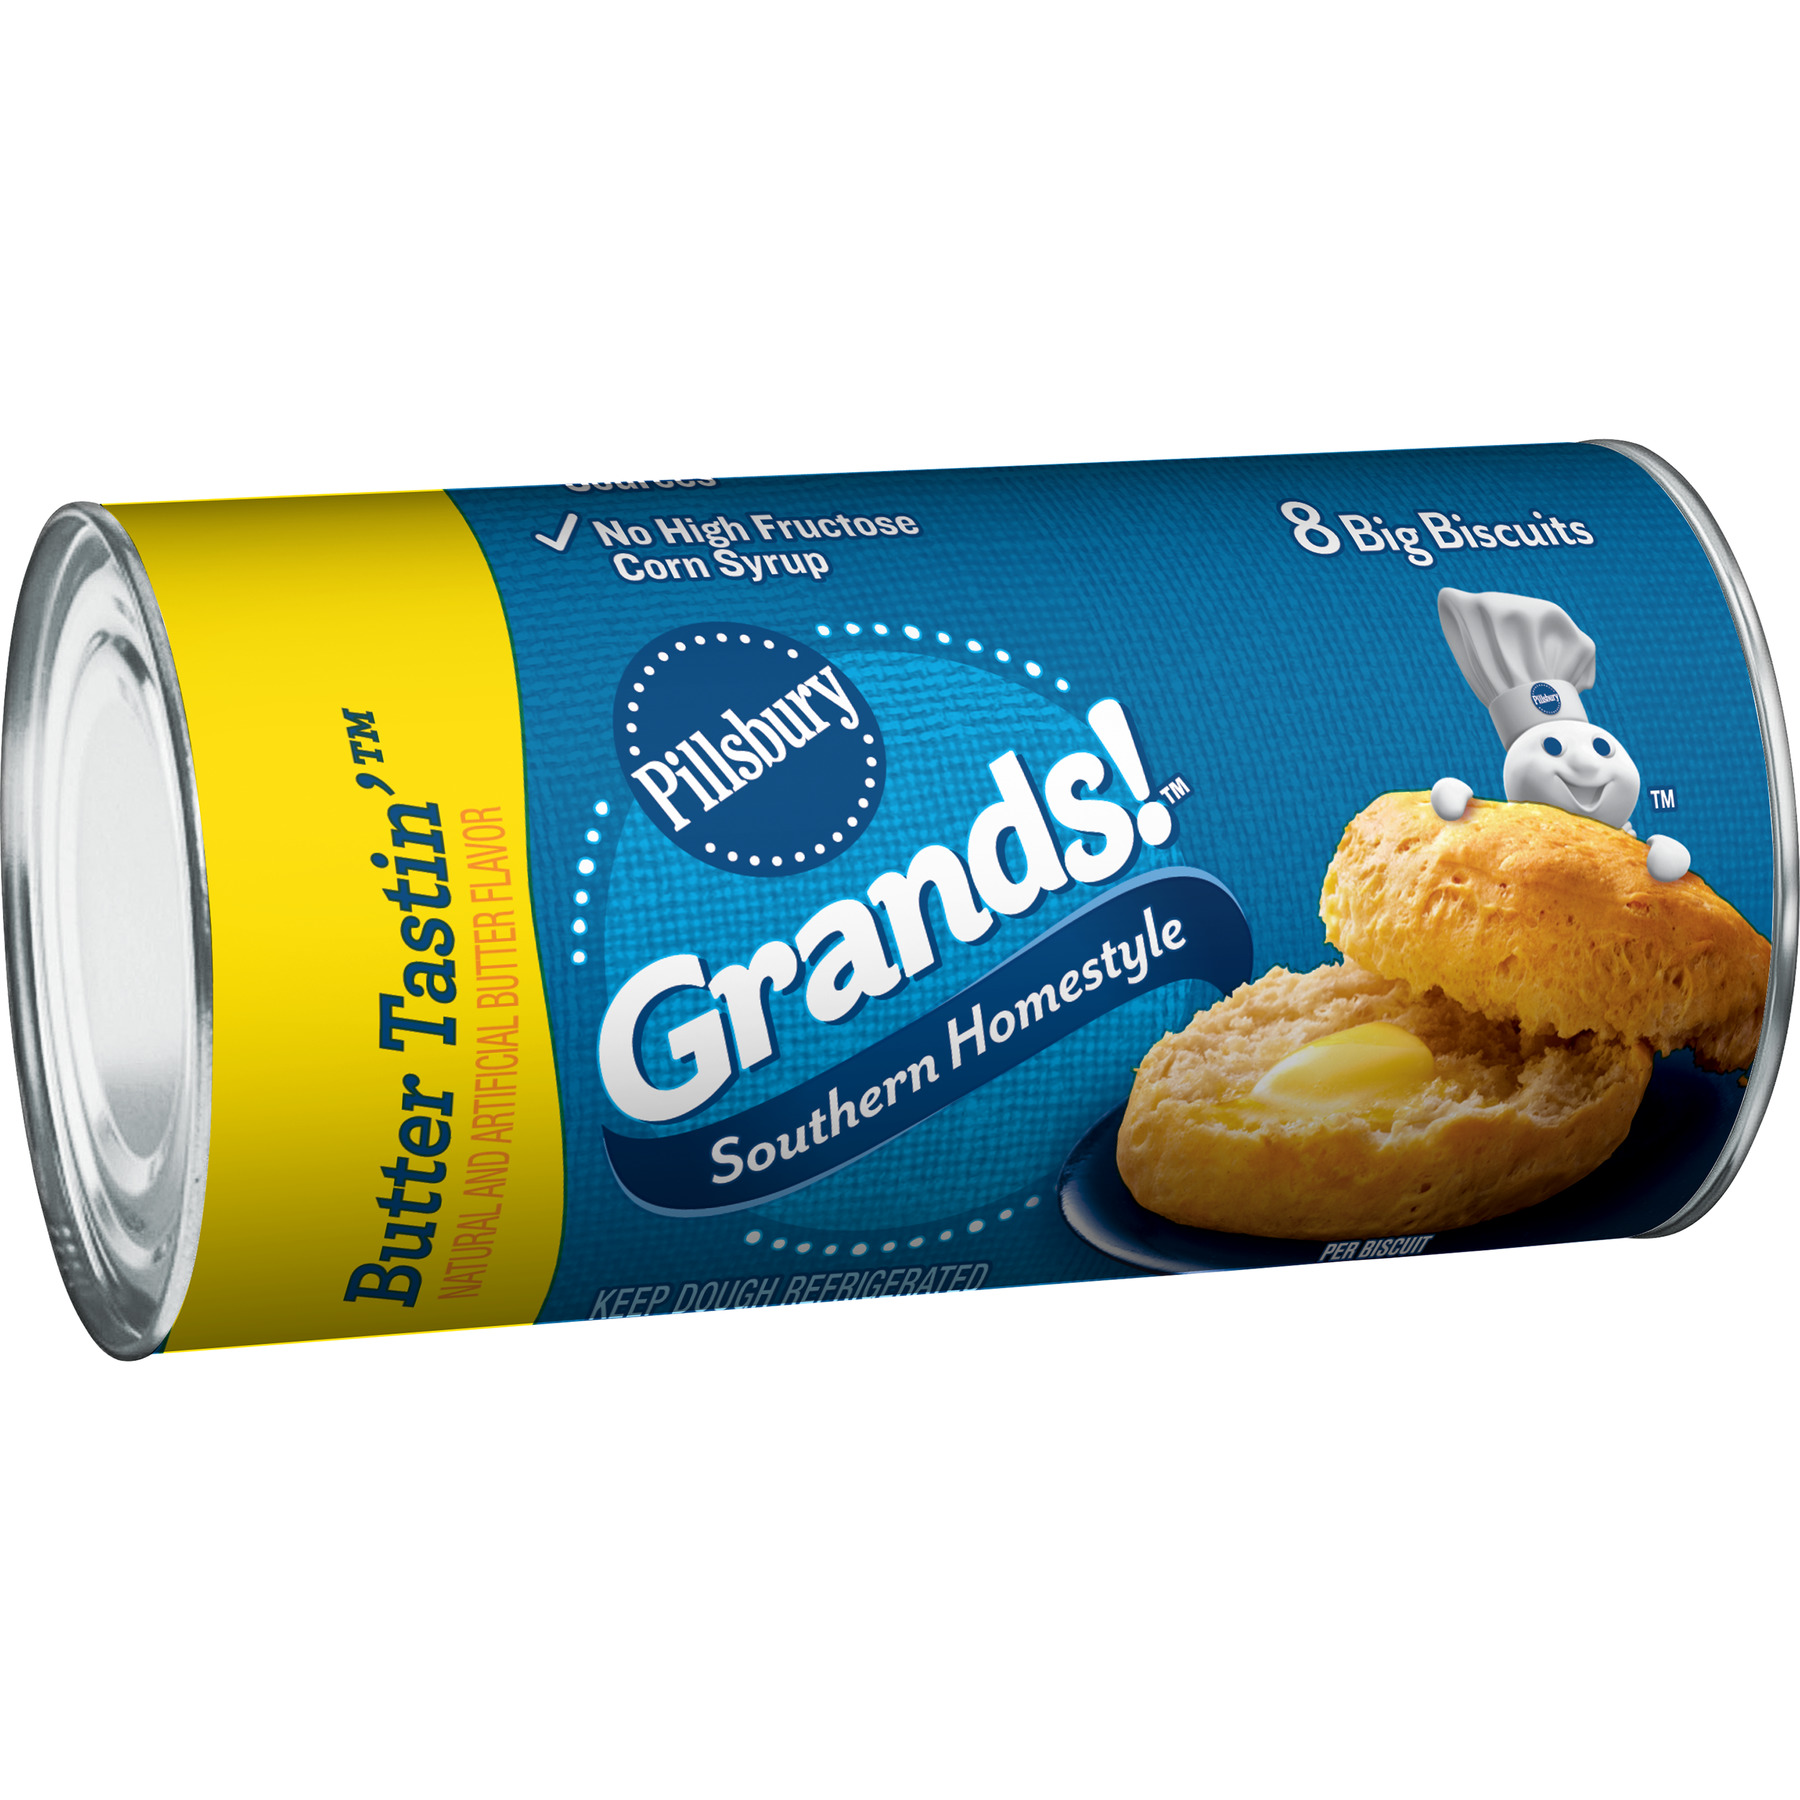 Pillsbury, Southern Homestyle Butter Tastin' Biscuits, 16.3 Oz., 8 Count